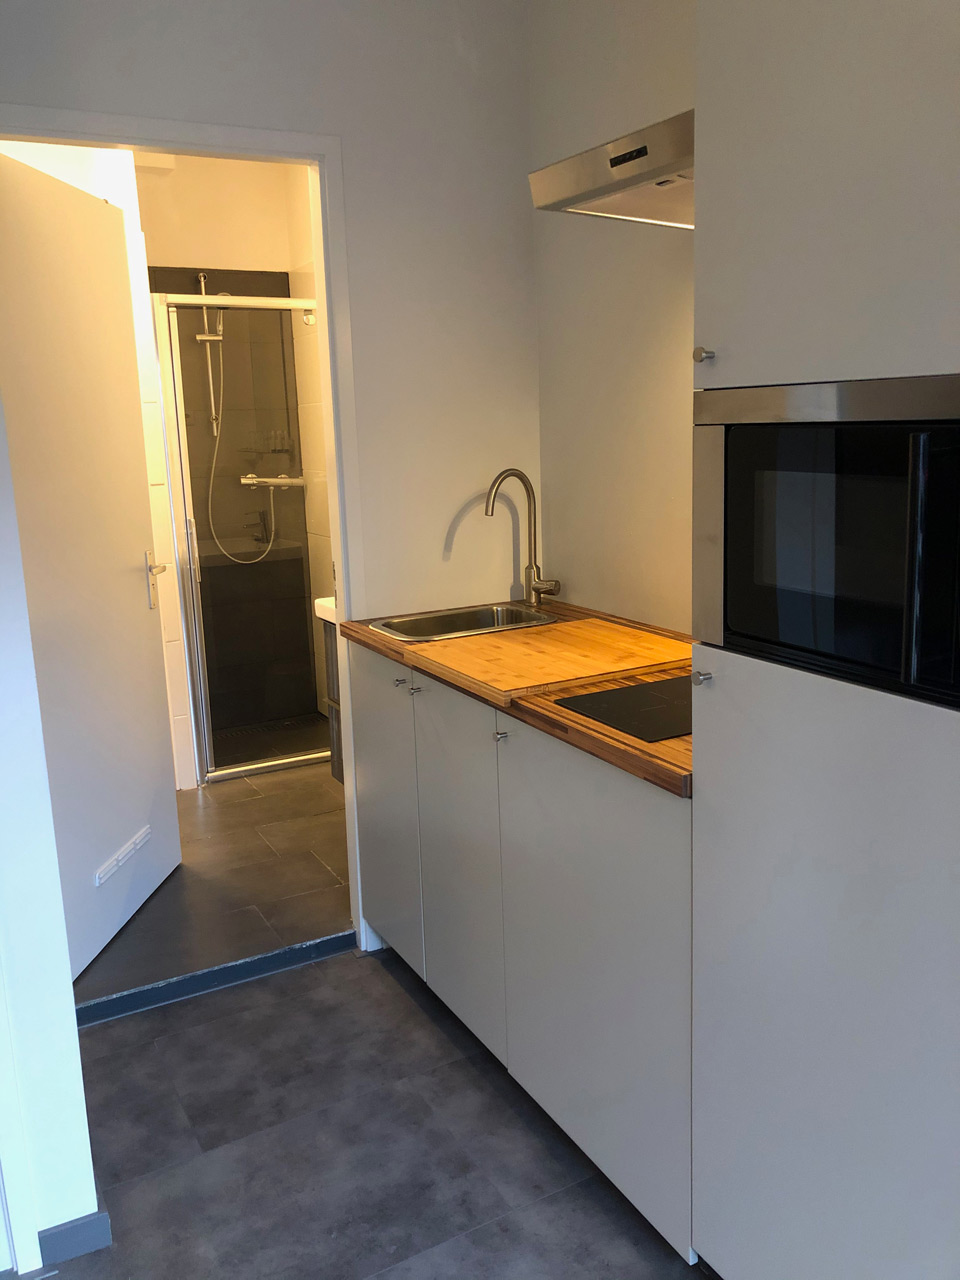 Keuken-kitchen-kuche-Droste-Relaxed-Apartments2